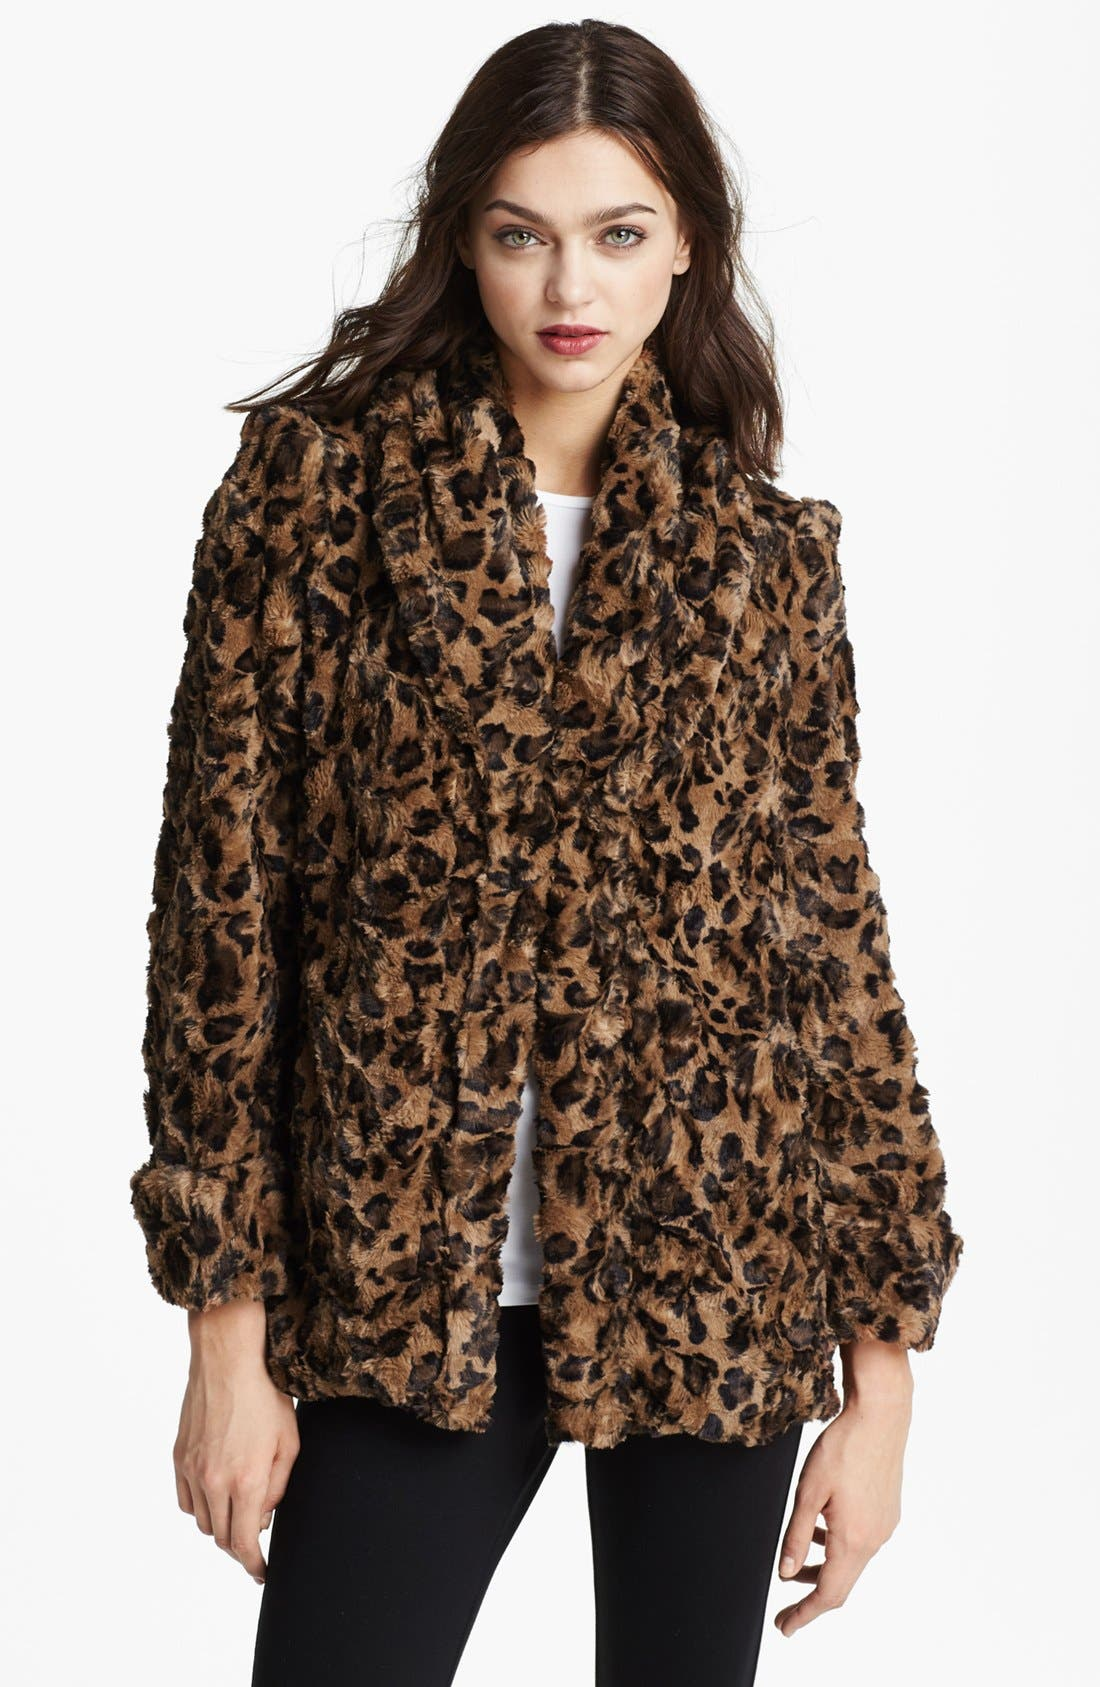 Alternate Image 1 Selected - Alice + Olivia Leopard Print Faux Fur Jacket